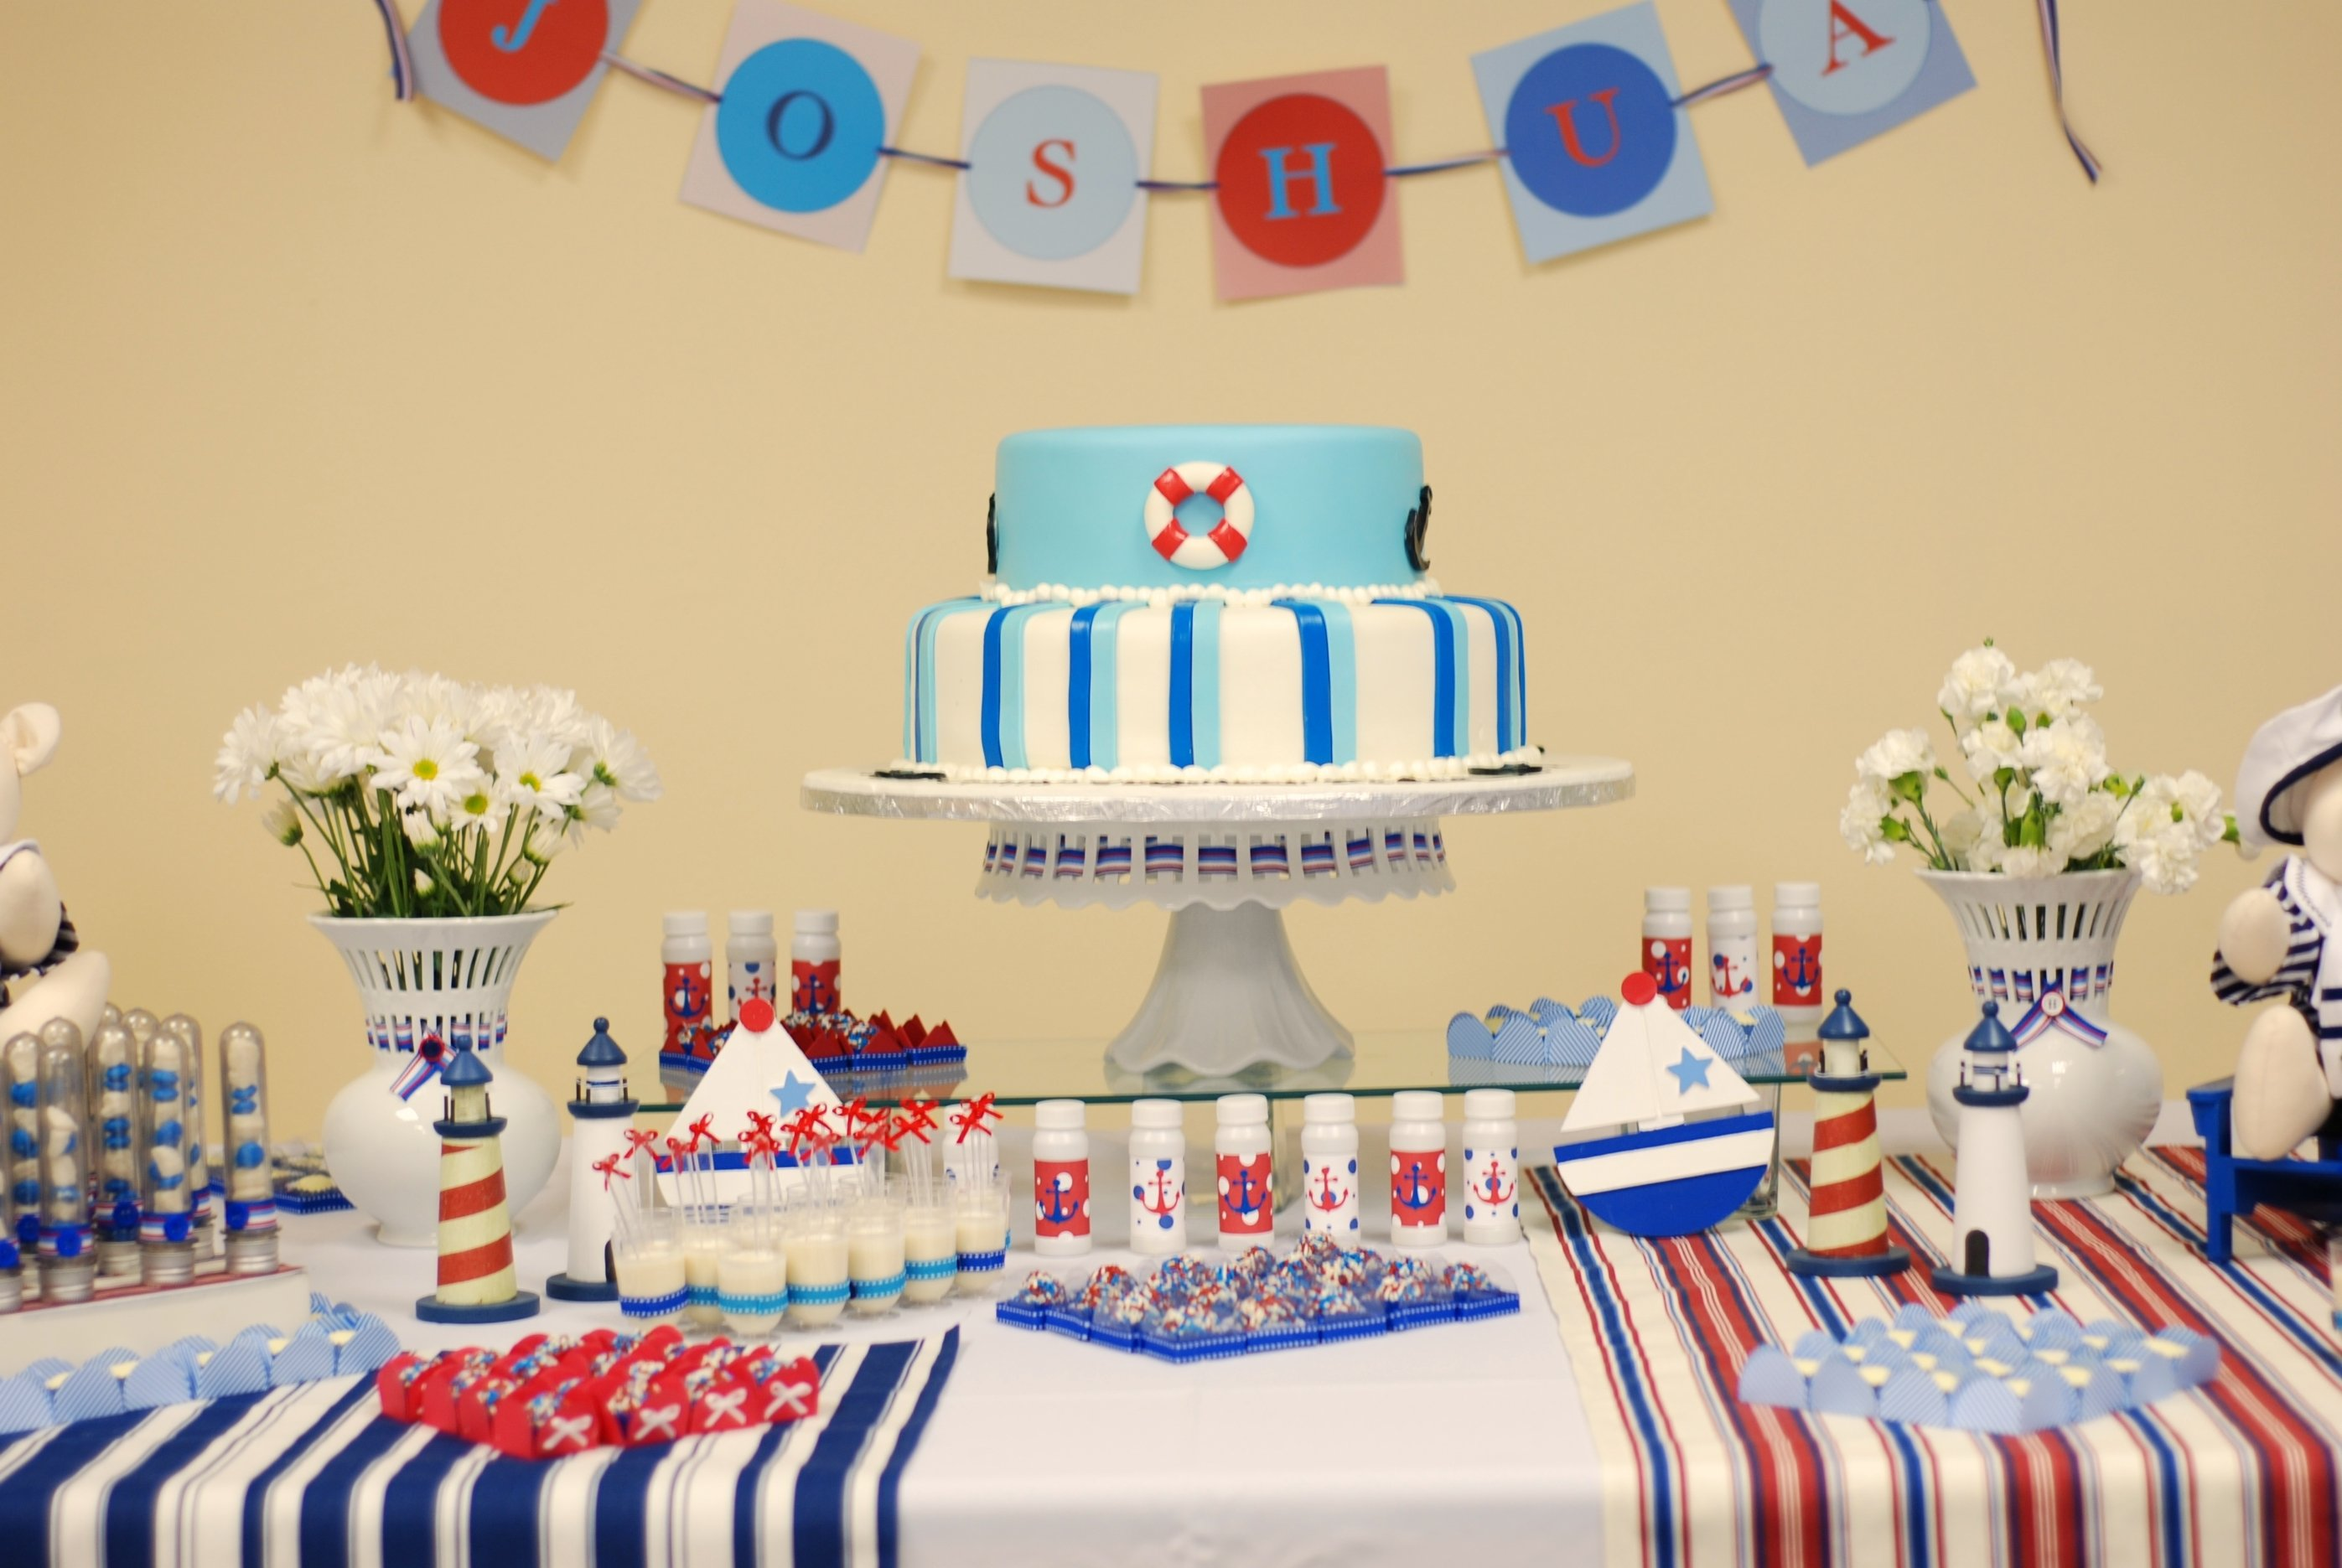 10 Fabulous First Birthday Party Ideas For Boys boys birthday party decoration ideas decorideaz decorideaz 9 2020